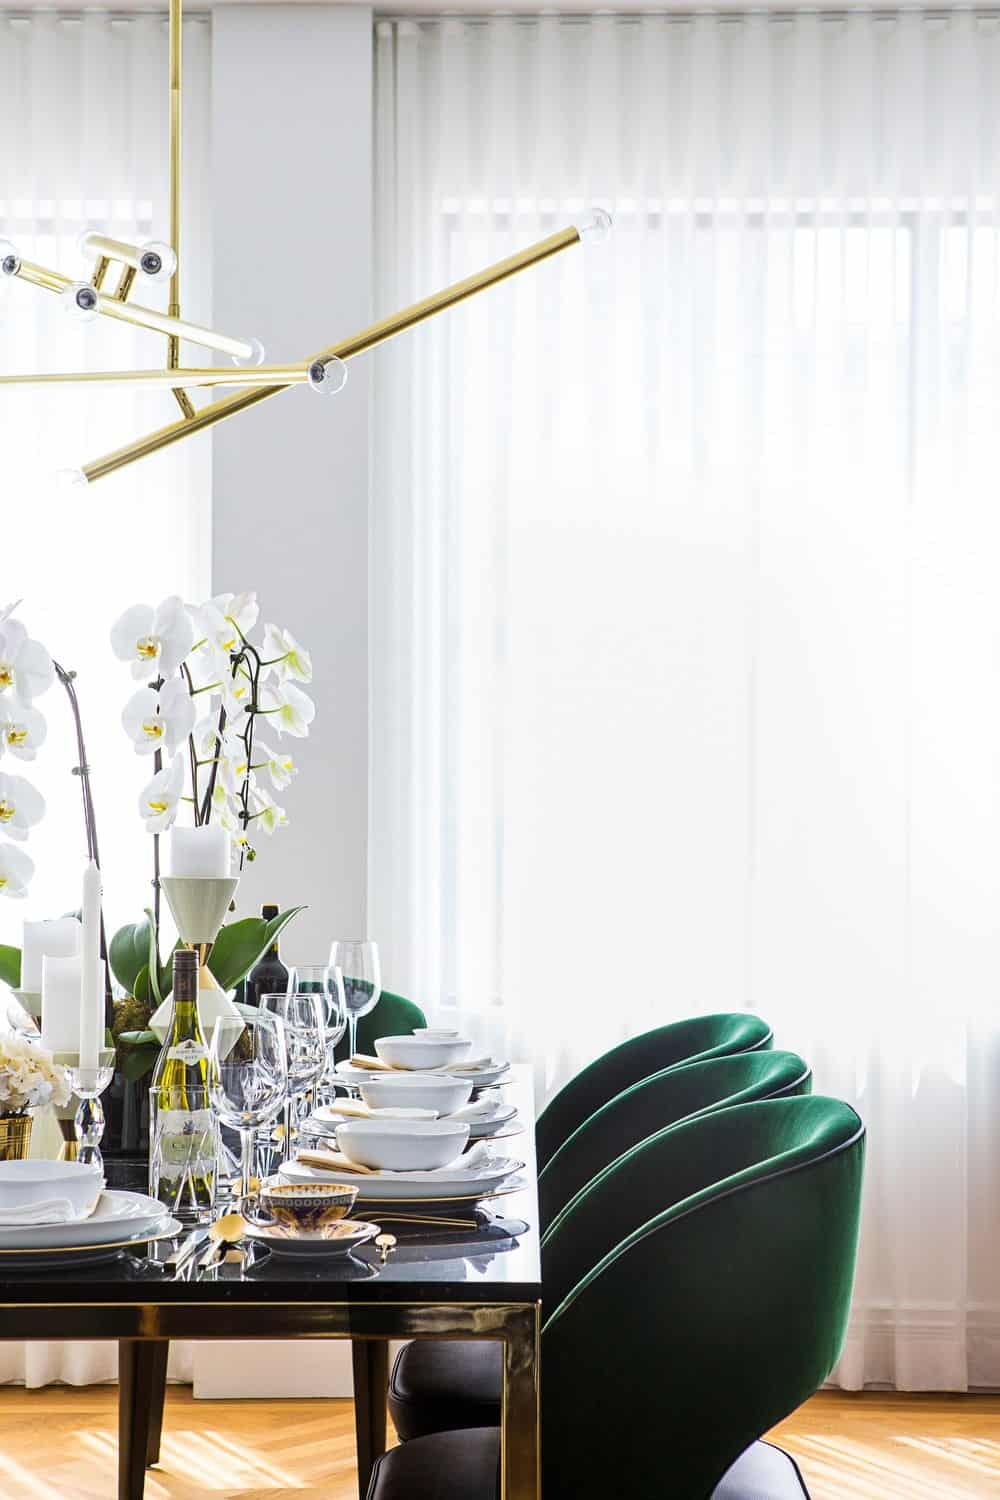 The dining area boasts modish table set and lighted by stylish ceiling light. Photo credit: Erik Rotter